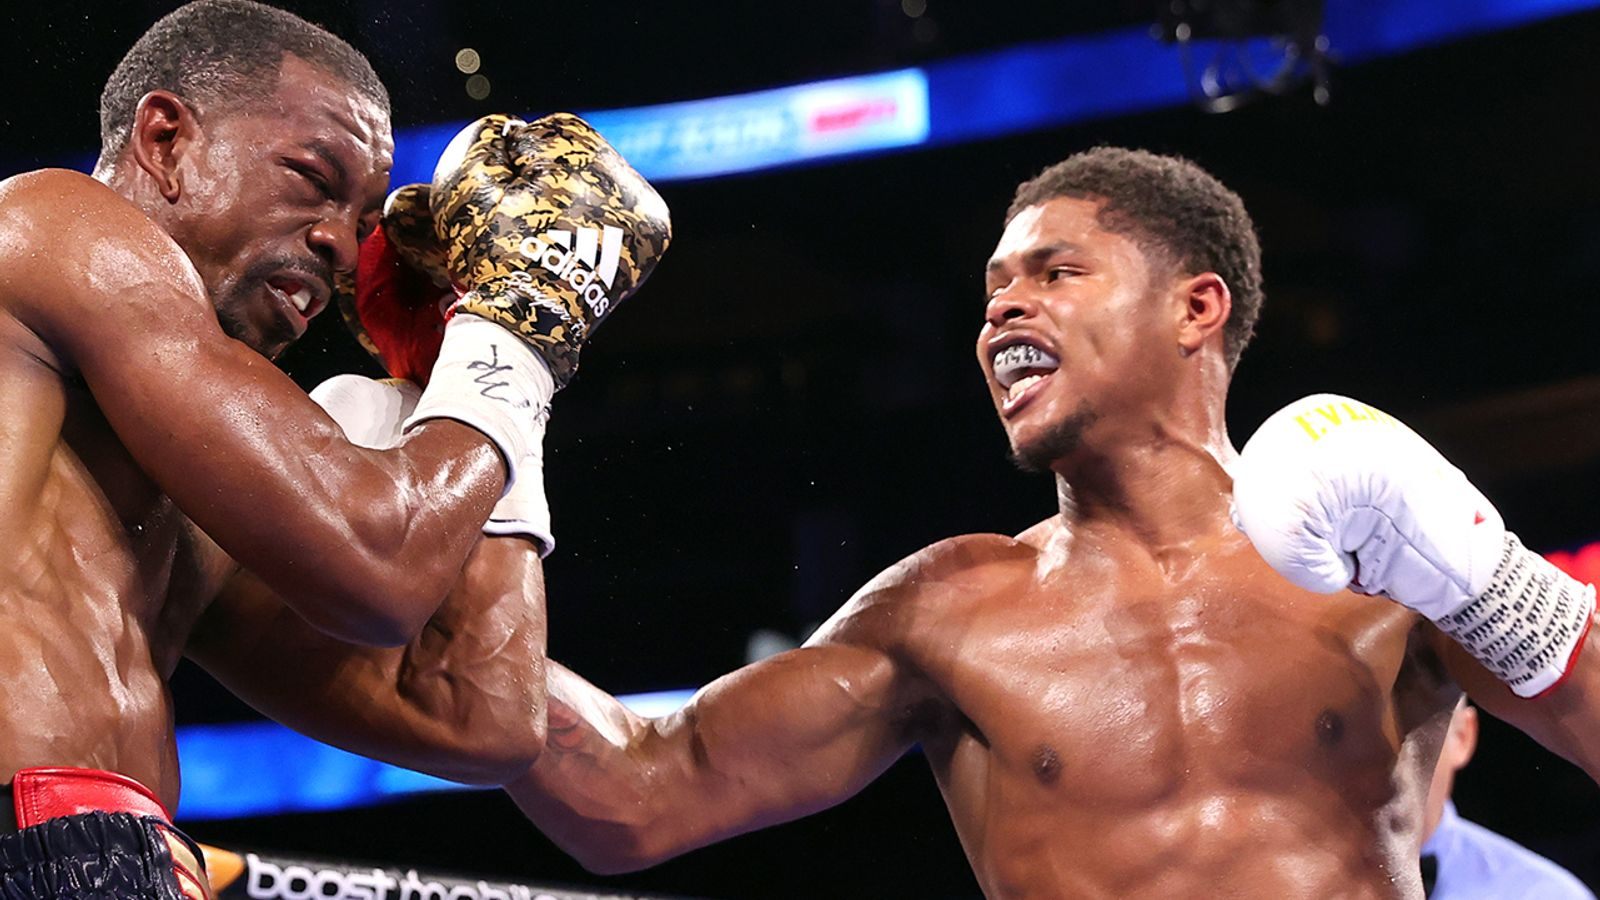 Shakur Stevenson stops Jamel Herring in 10 rounds of world super-featherweight title fight in a breakthrough performance